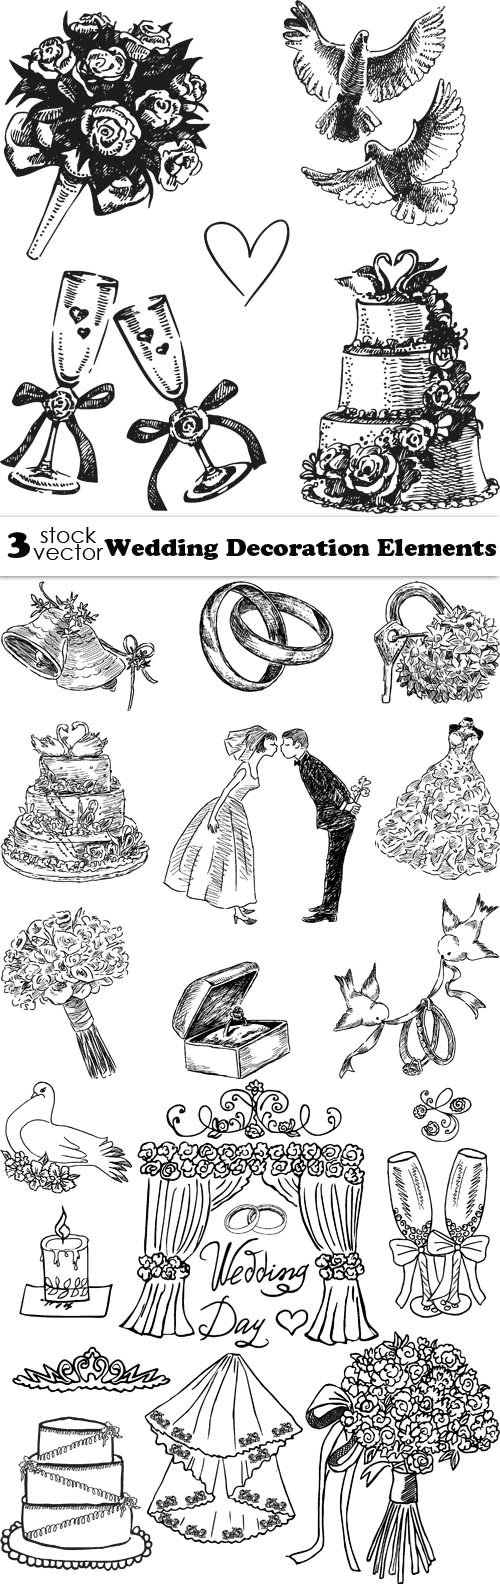 Vectors - Wedding Decoration Elements